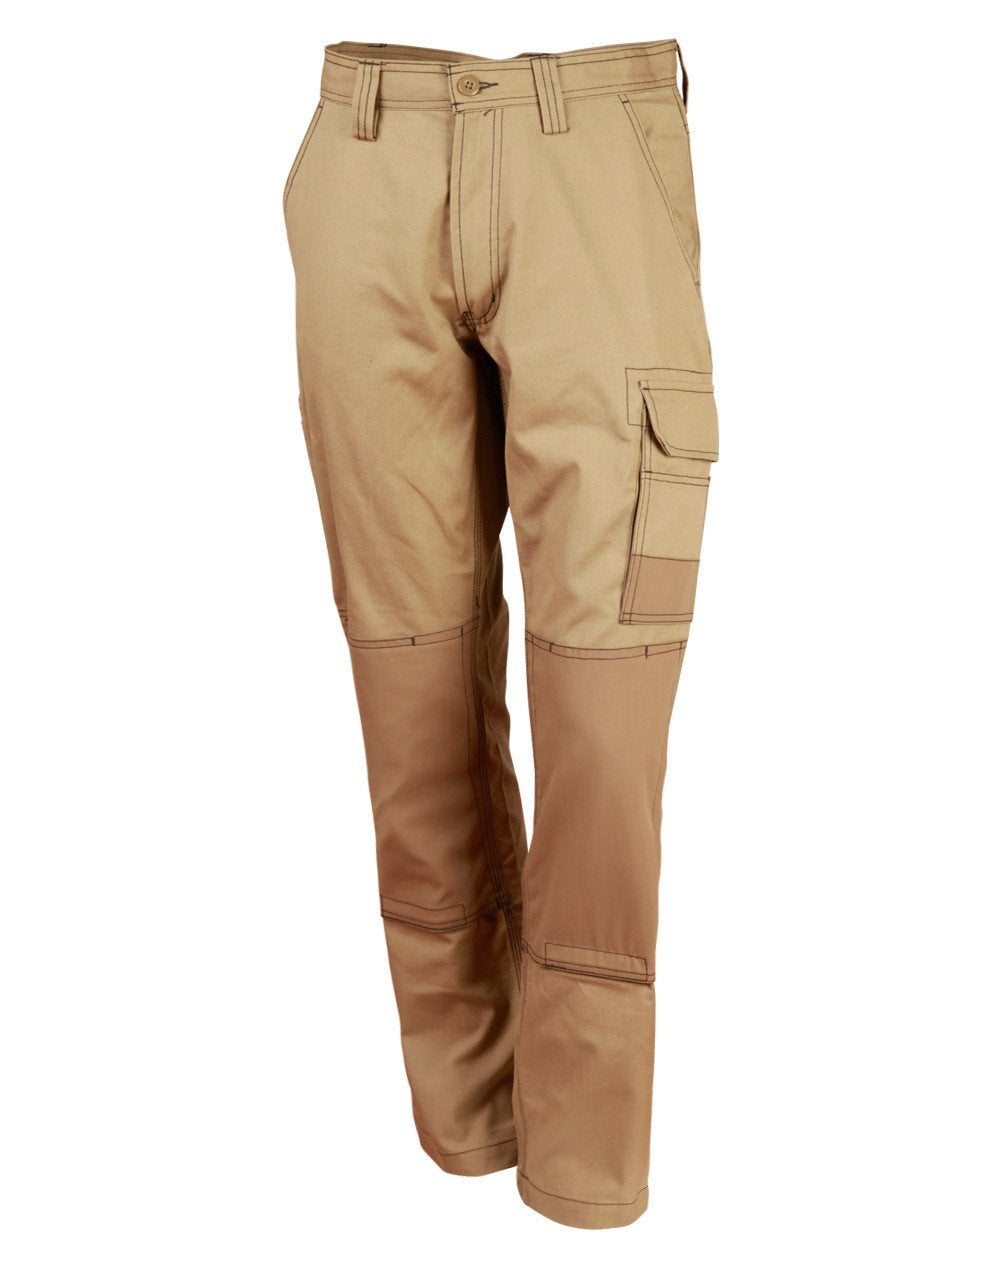 CORDURA SEMI-FITTED WORK PANTS